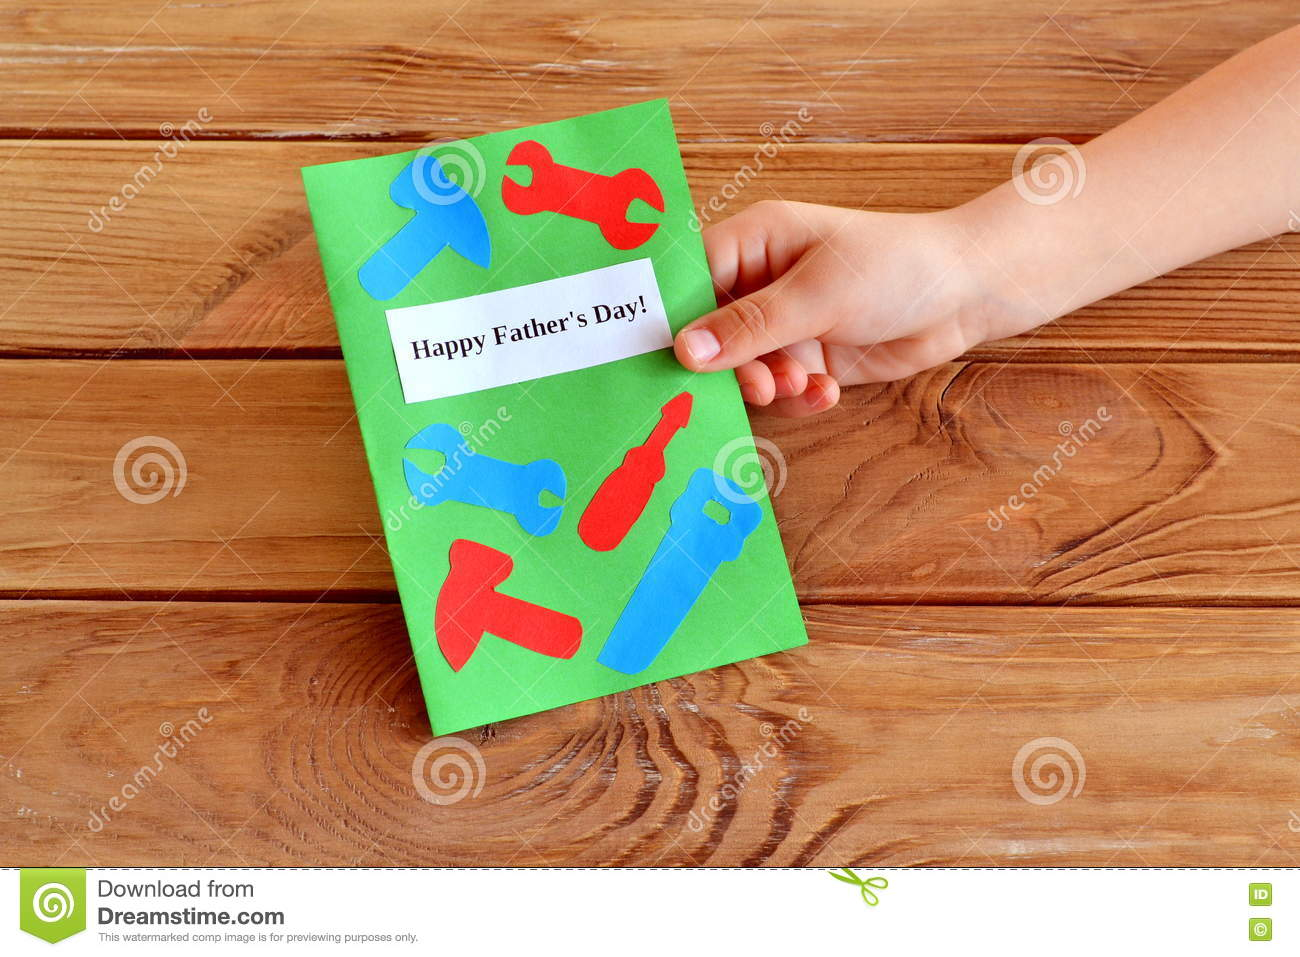 Child Holds A Card In Hand Greeting Card Fathers Day Happy